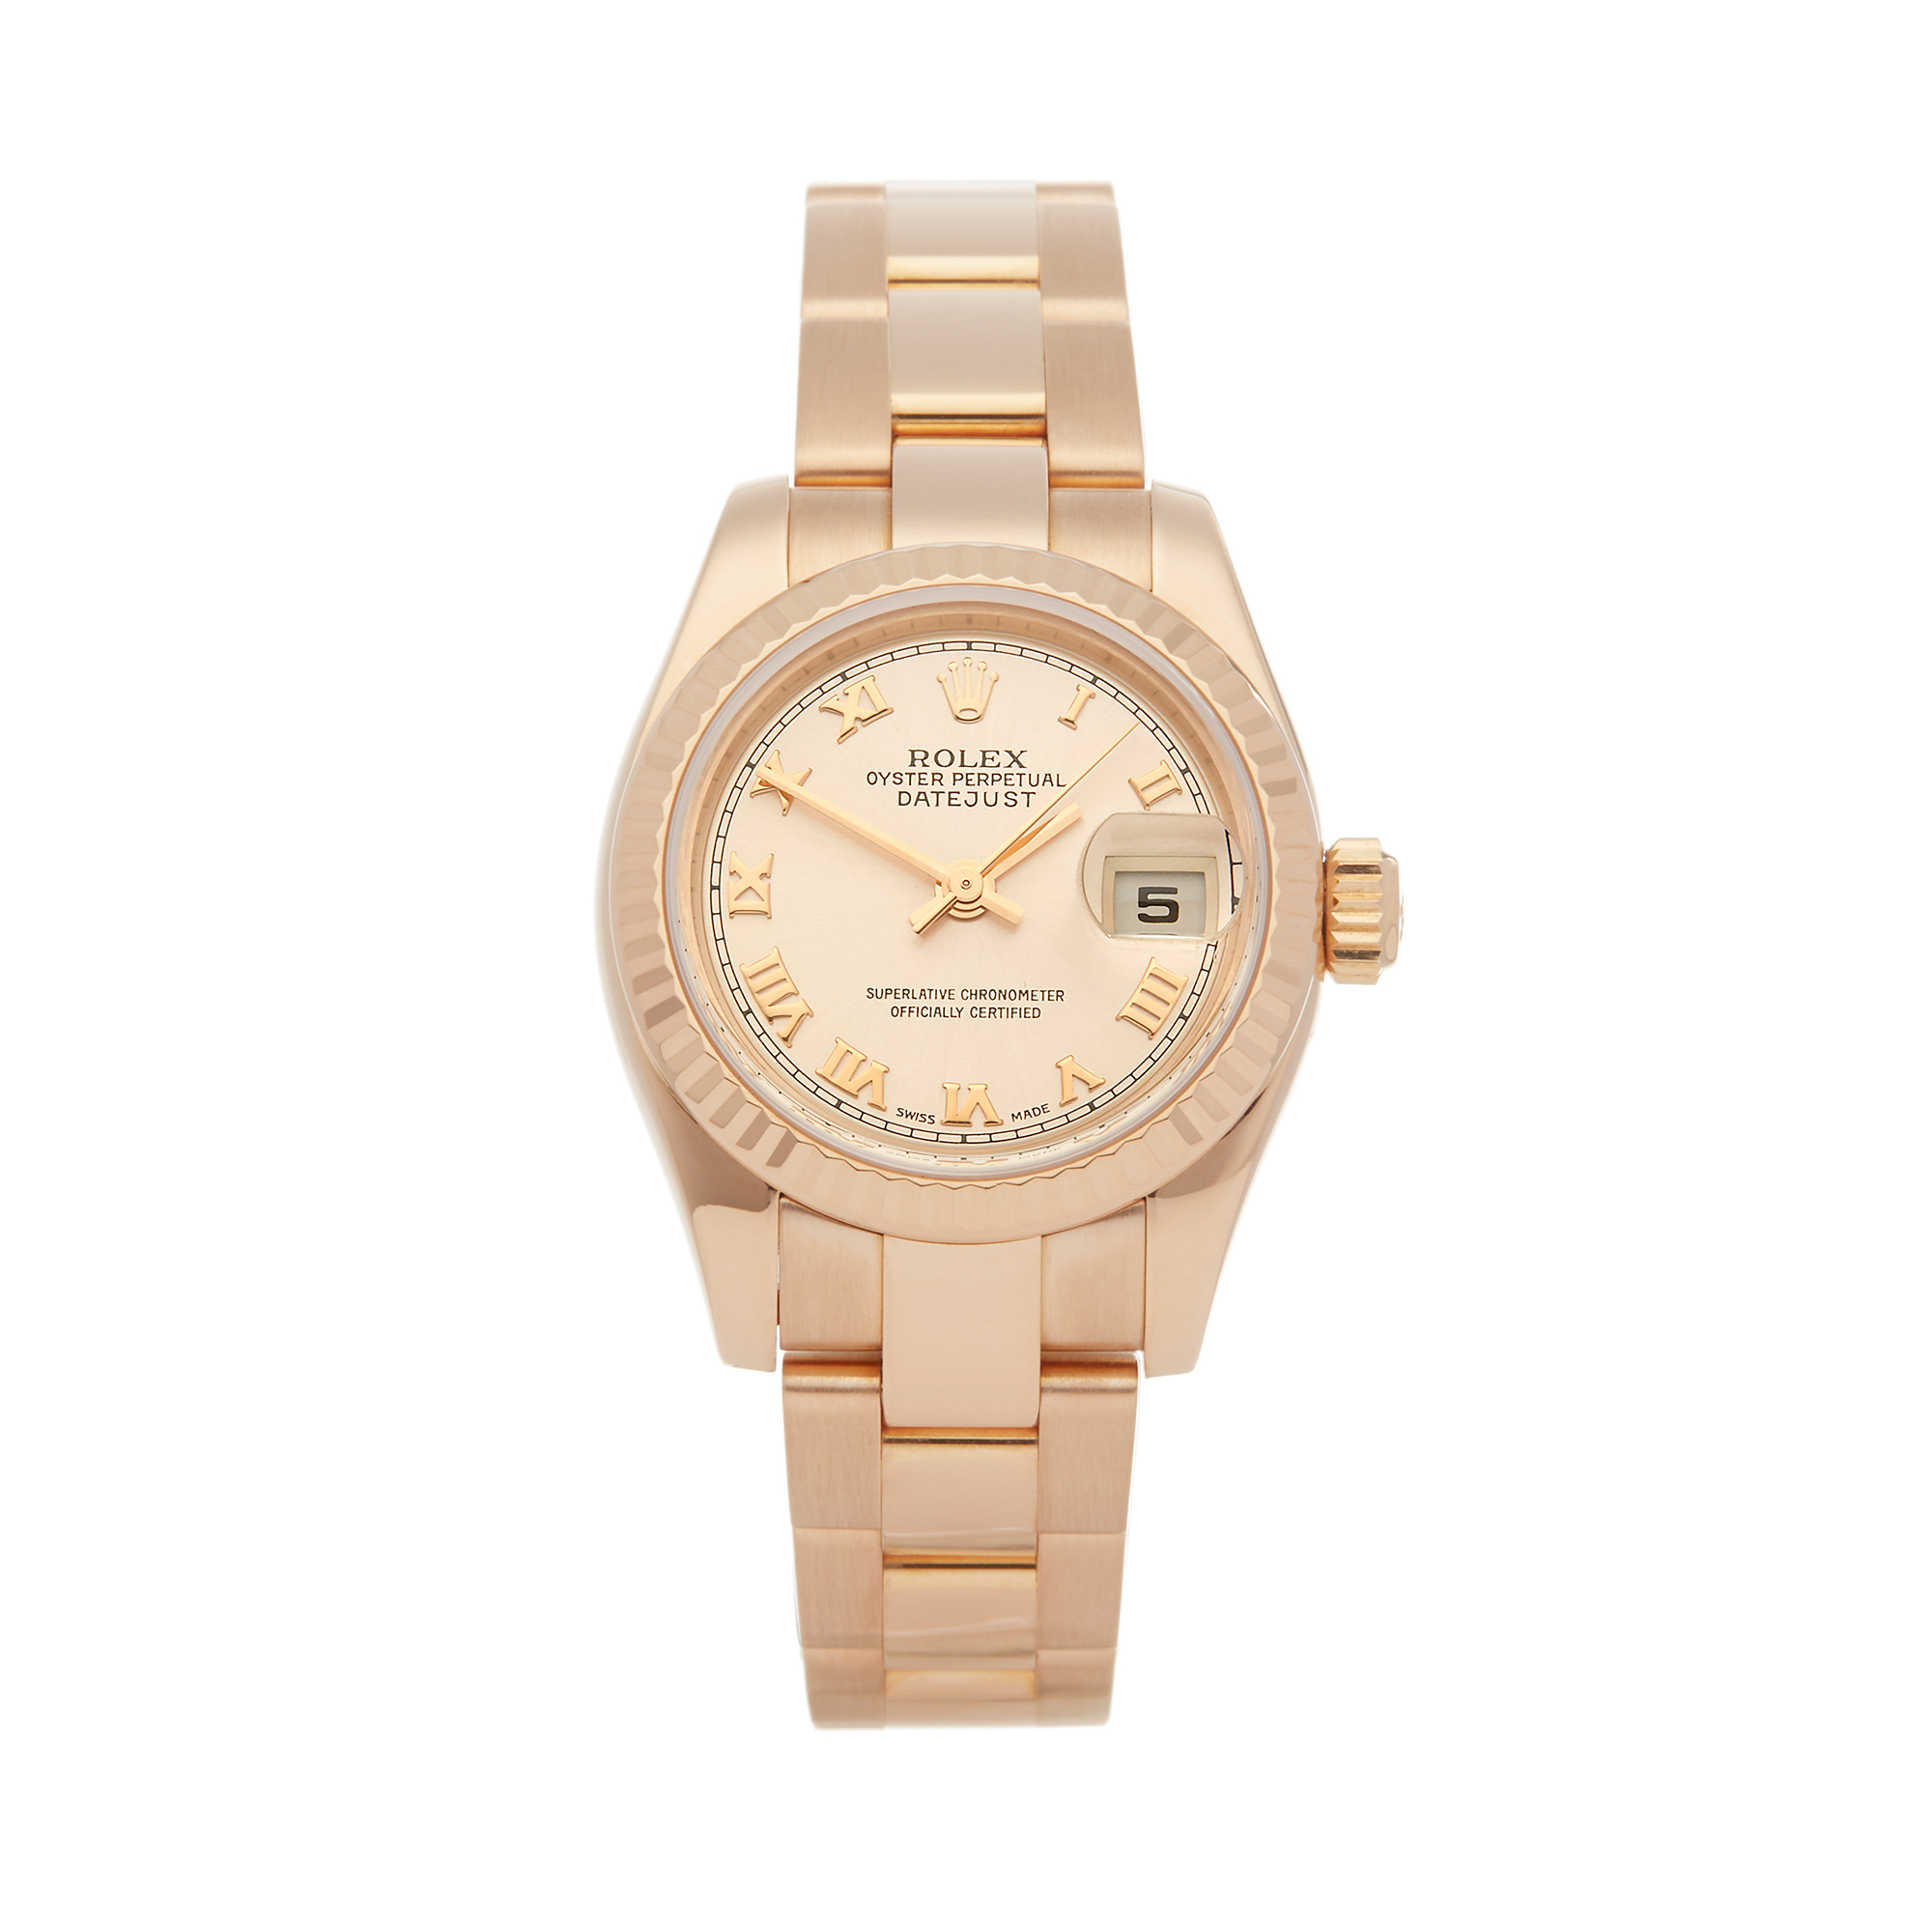 Rolex Datejust 26 179175 Ladies Rose Gold Watch - Image 8 of 8